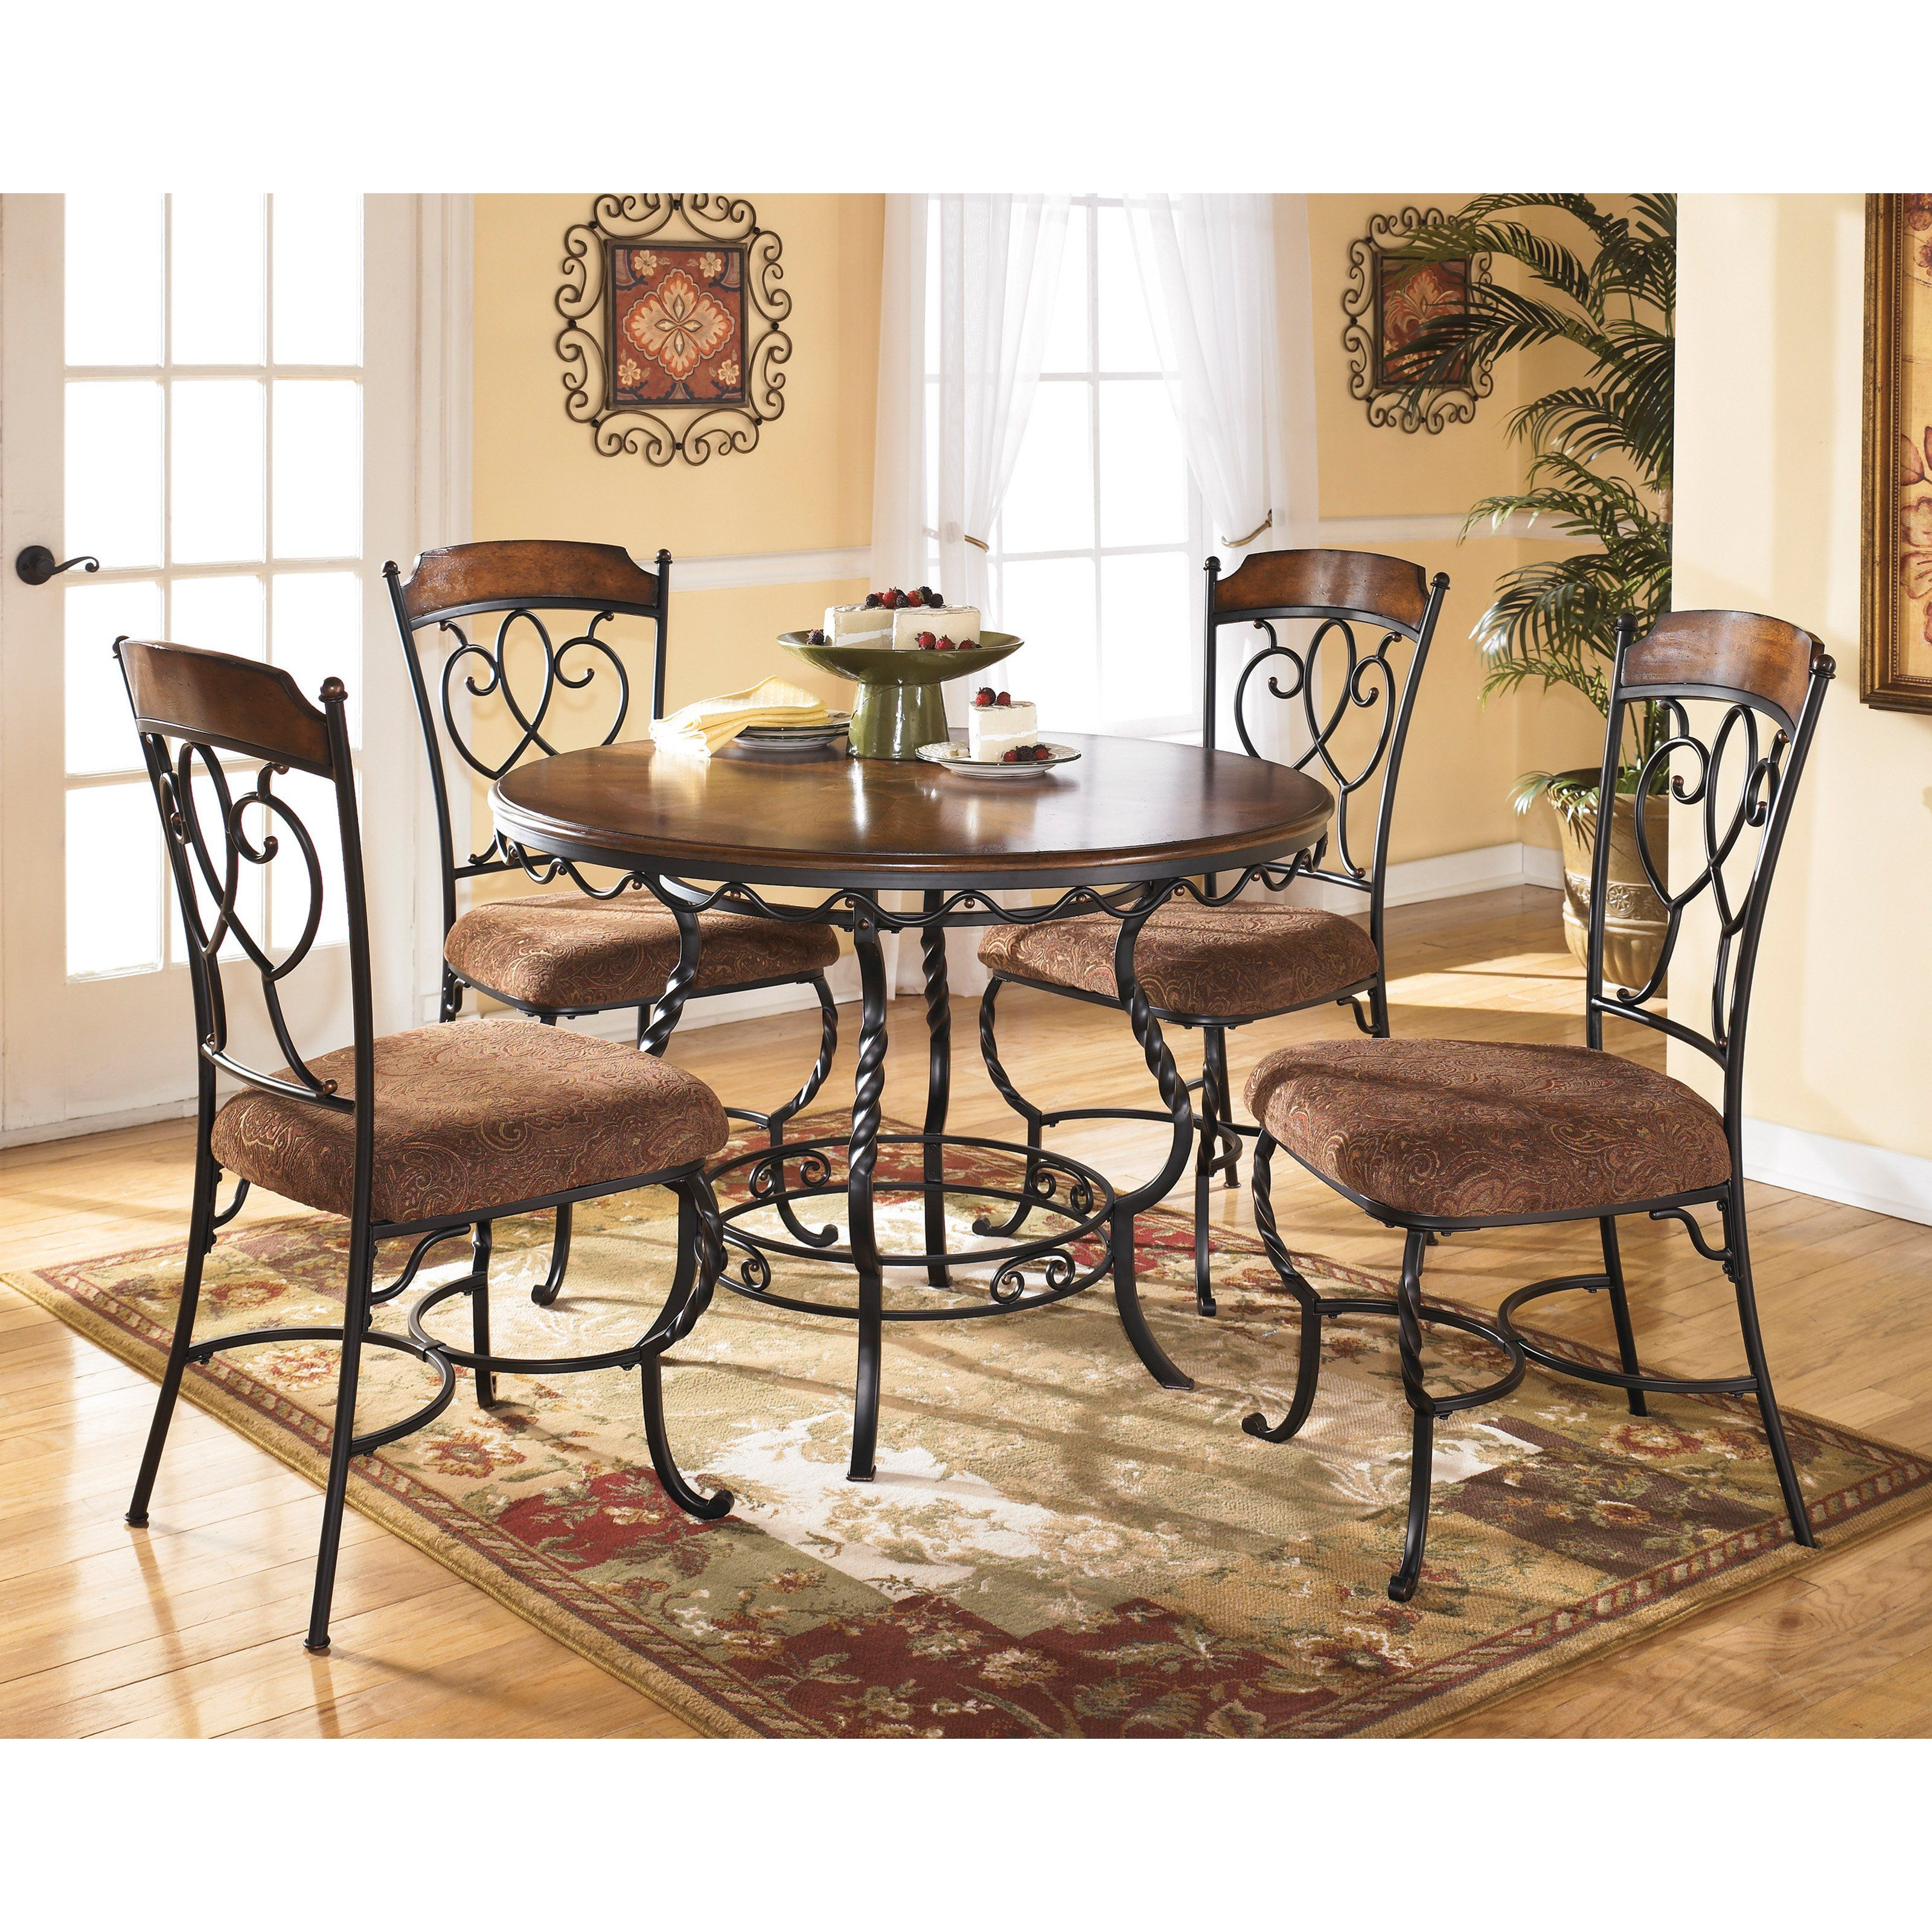 Signature design by ashley nola piece round dining table